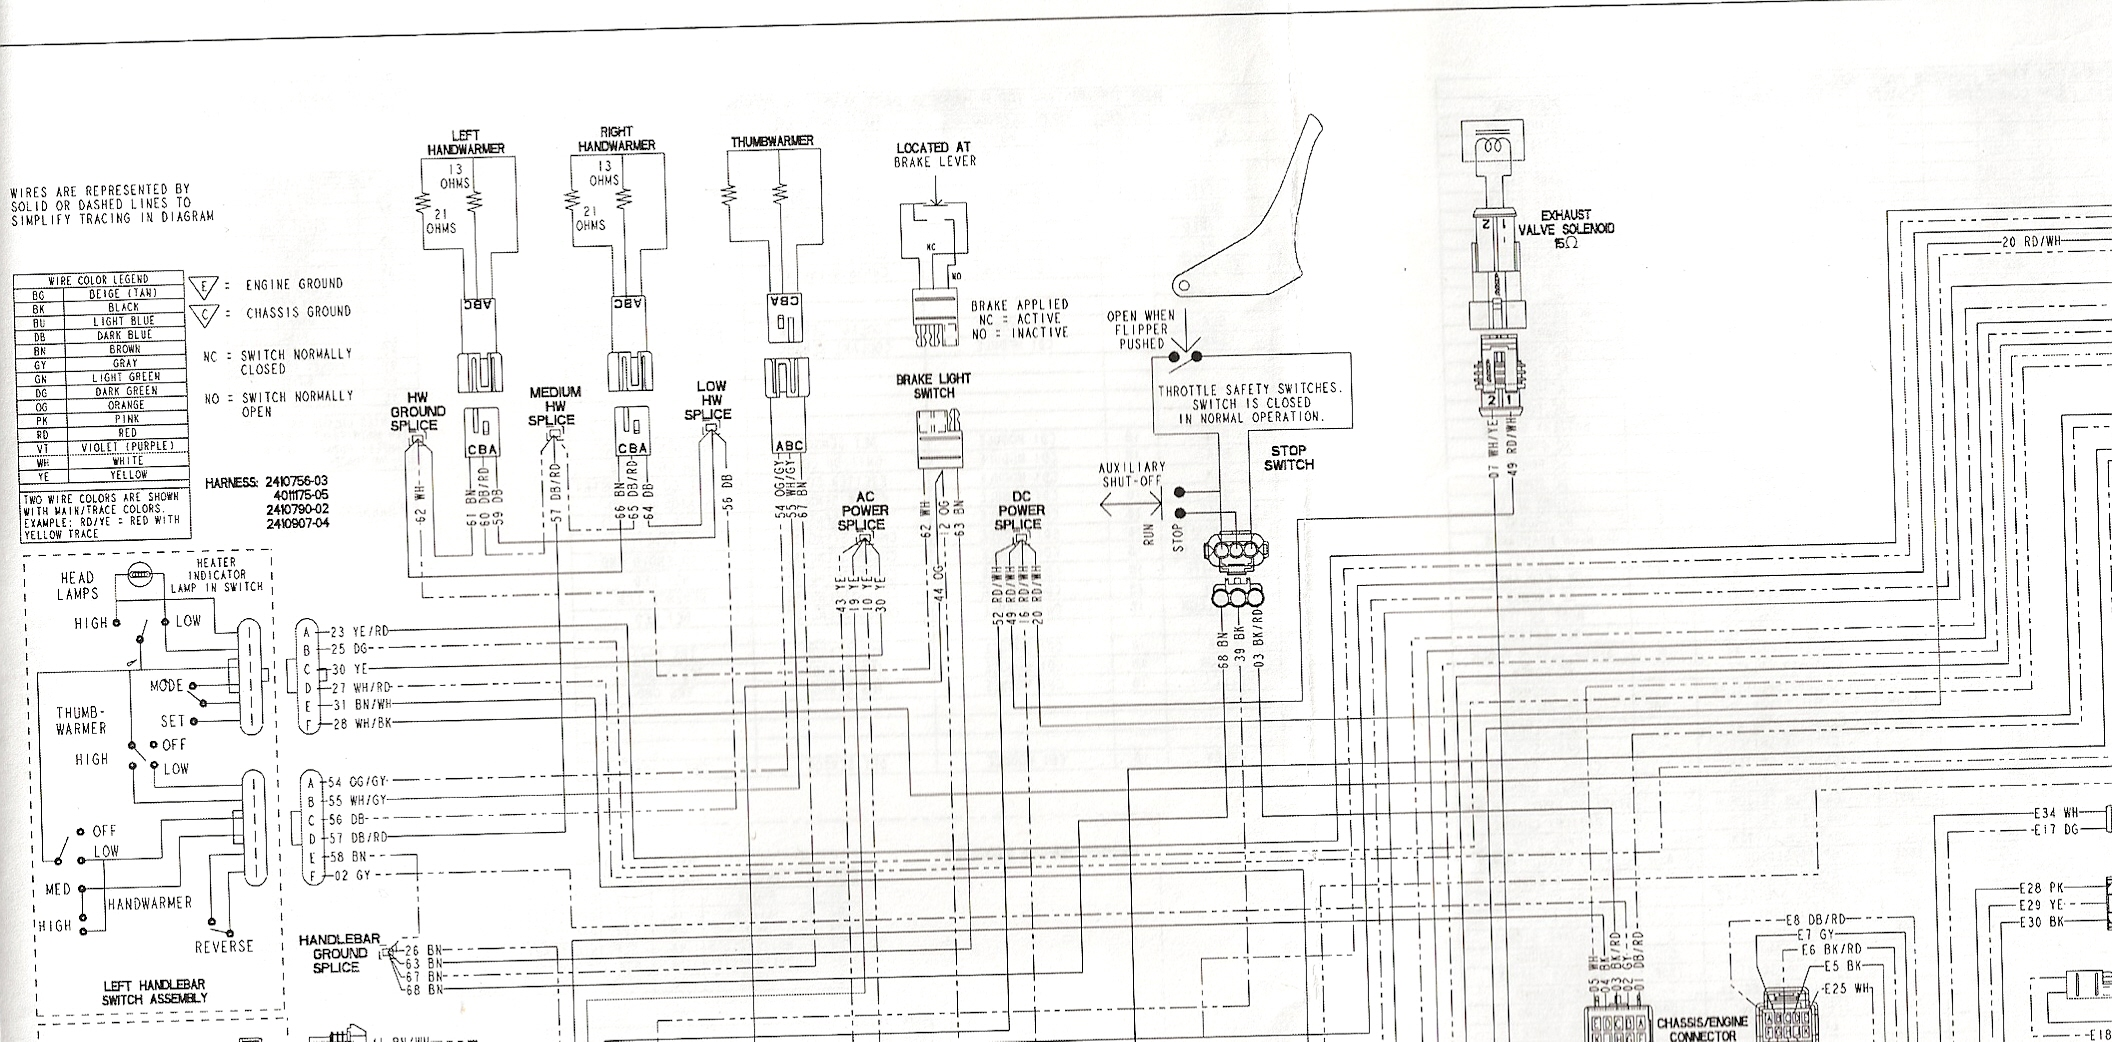 Wiring Diagram 2010 Can Am Outlander 800 Kawasaki Teryx